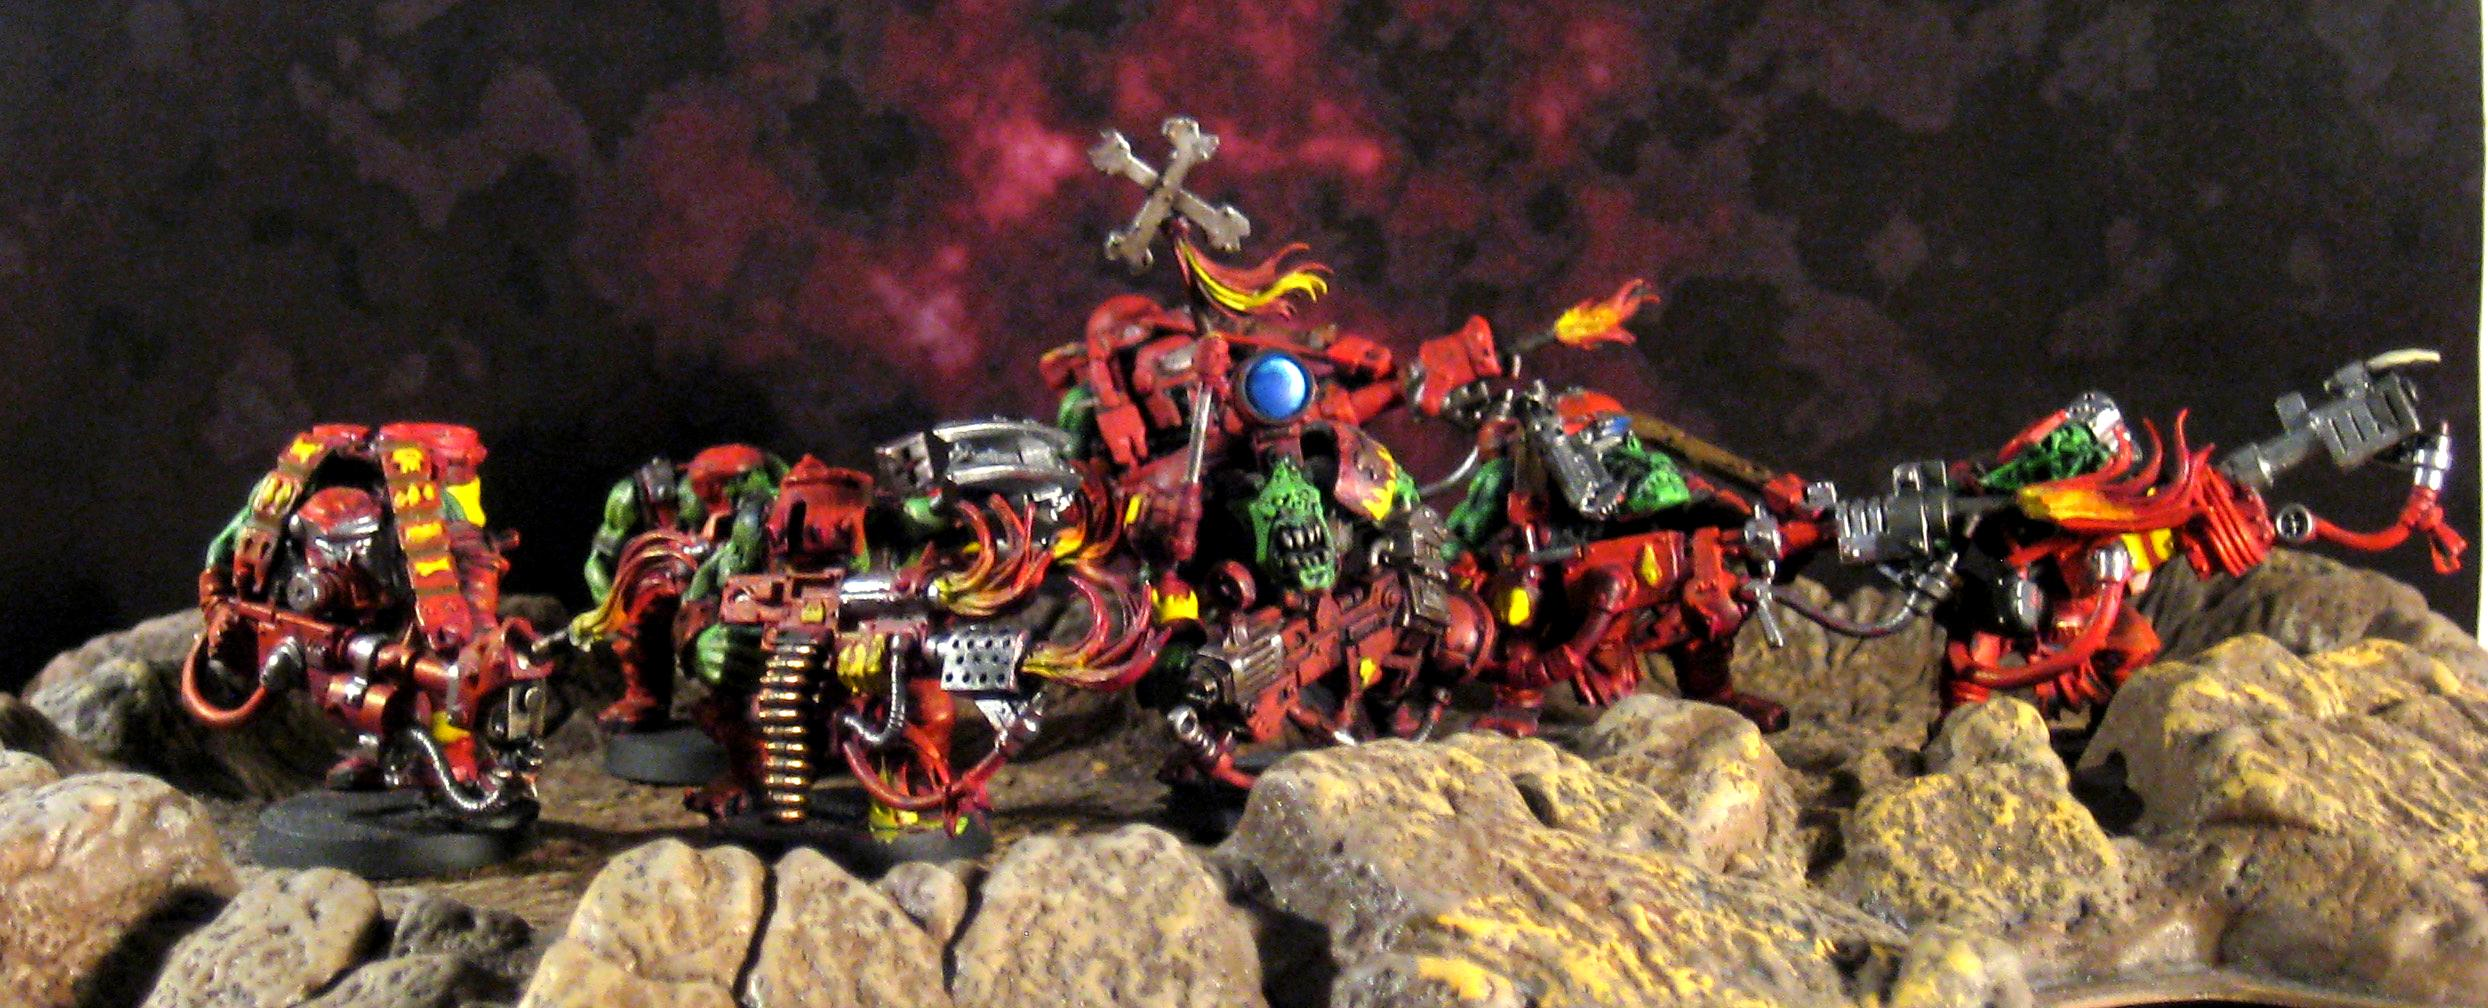 Burnas, Conversion, Evil Suns, Flames, Mekboy, Orks